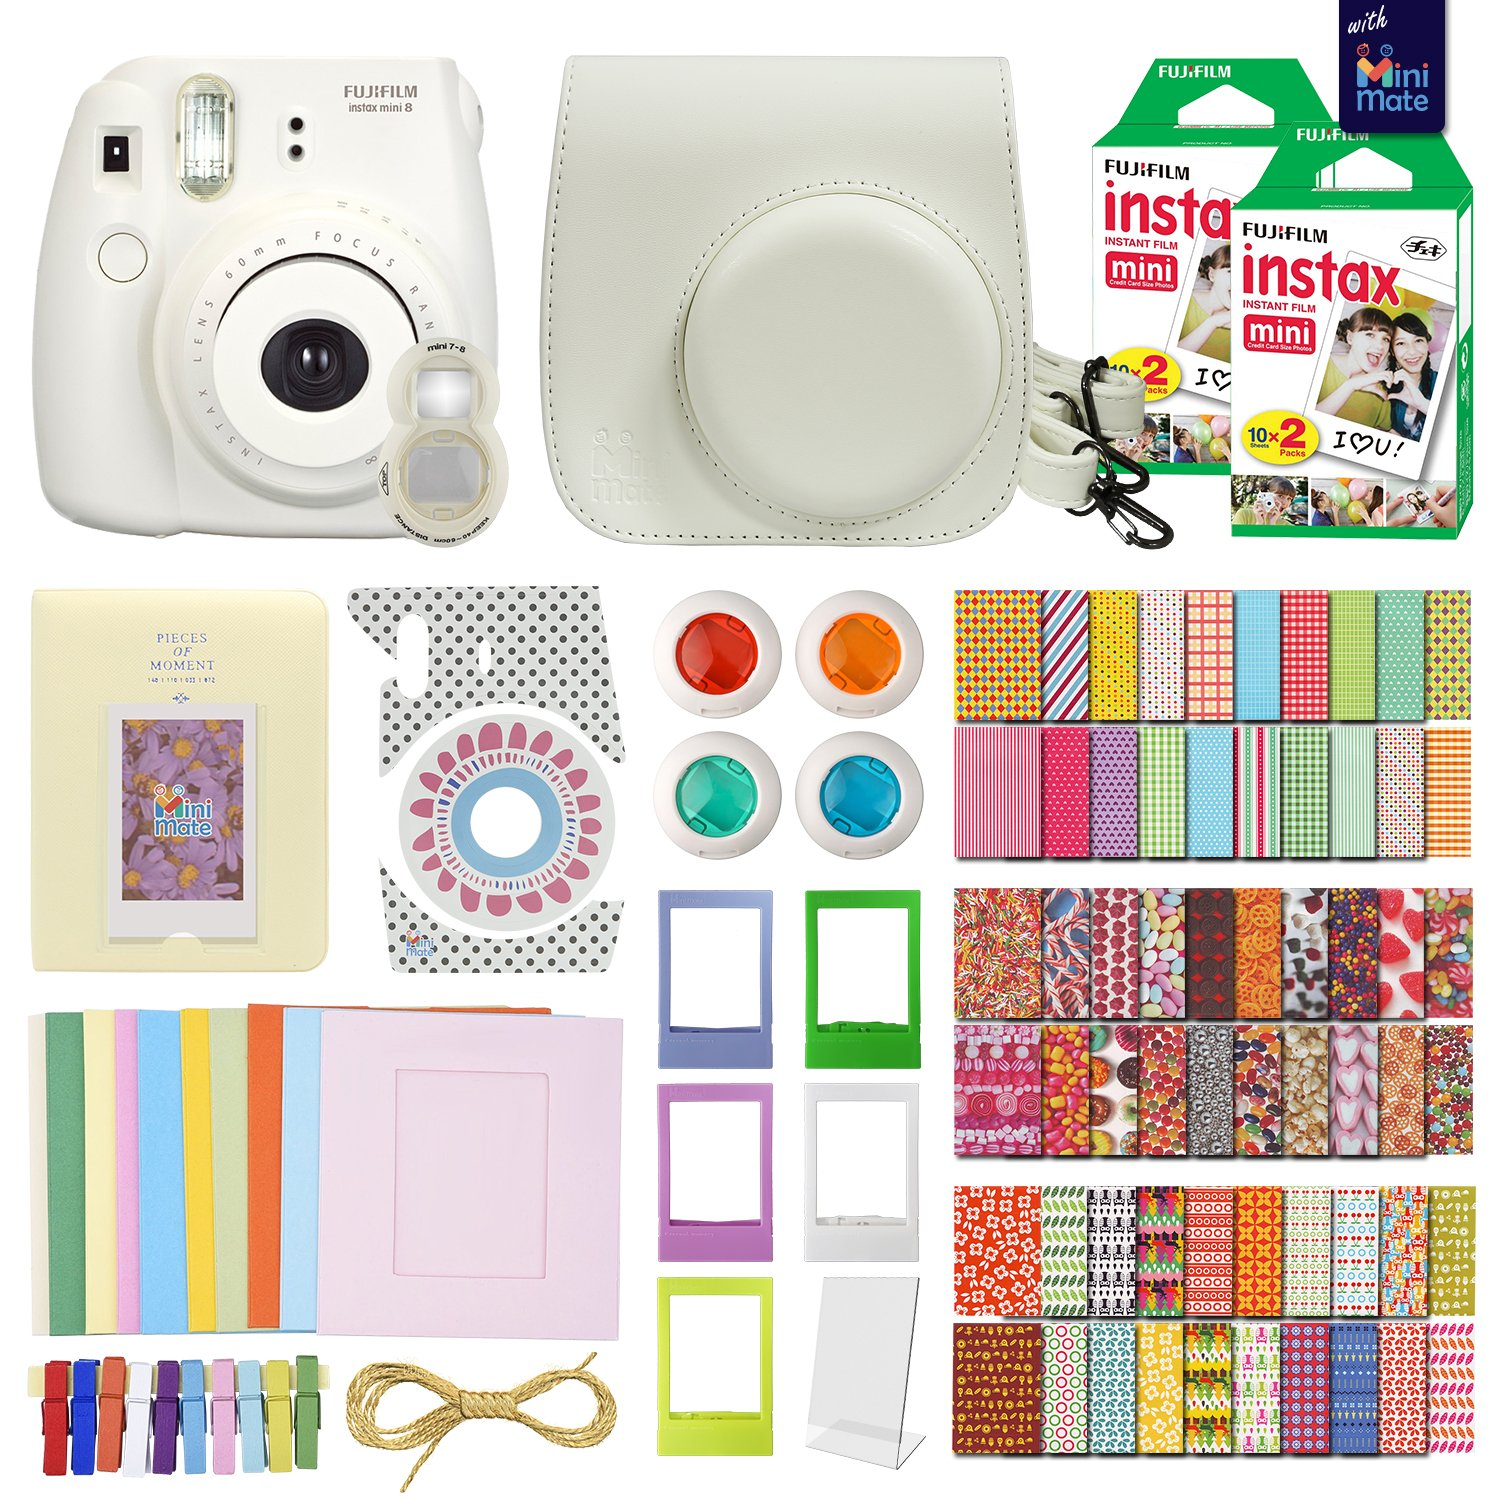 MiniMate Instax Mini 8 Camera with 40 Instax Film and Accessory Bundle, White